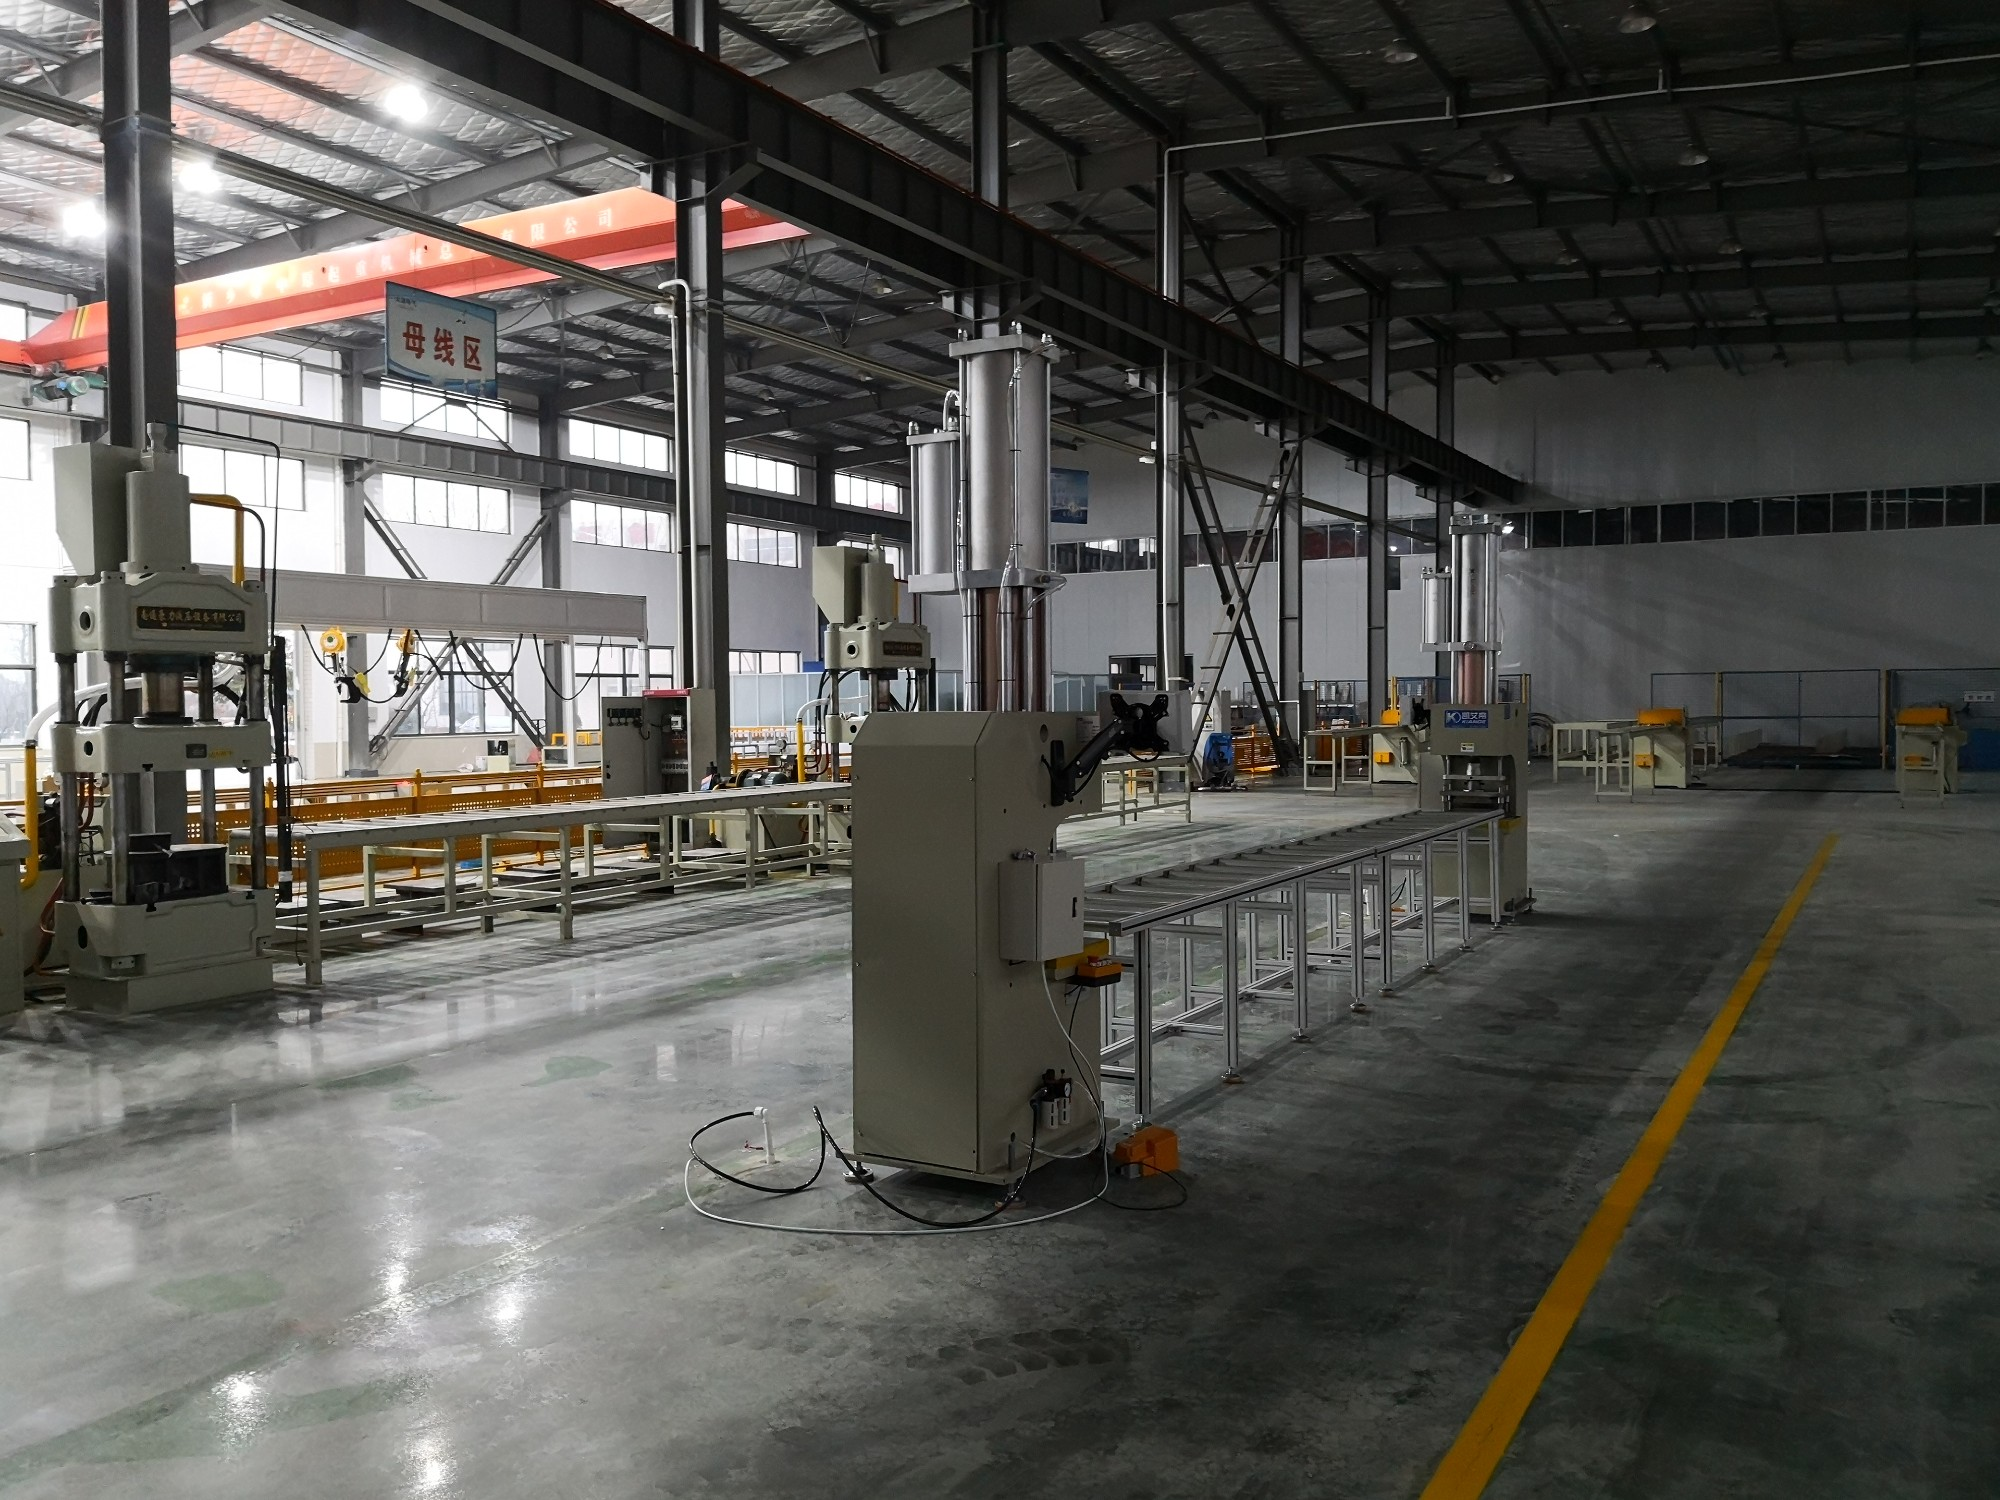 Multifunctional Busbar Processing Machine Manufacturers, Multifunctional Busbar Processing Machine Factory, Supply Multifunctional Busbar Processing Machine